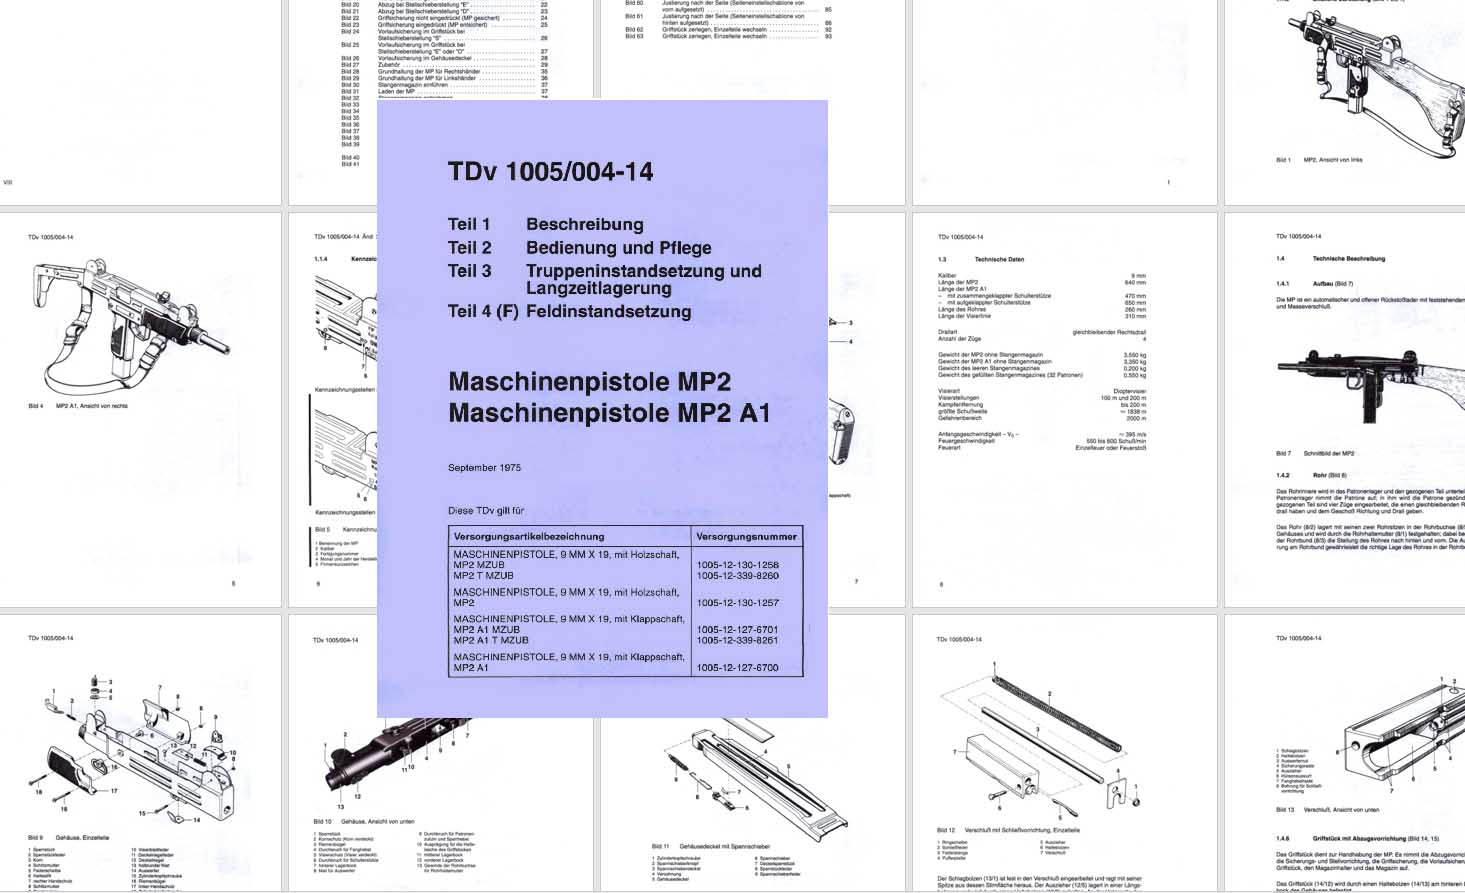 Machinenpistole MP2-MP2A 1975 Manual- TDv 1005/004-14 in German